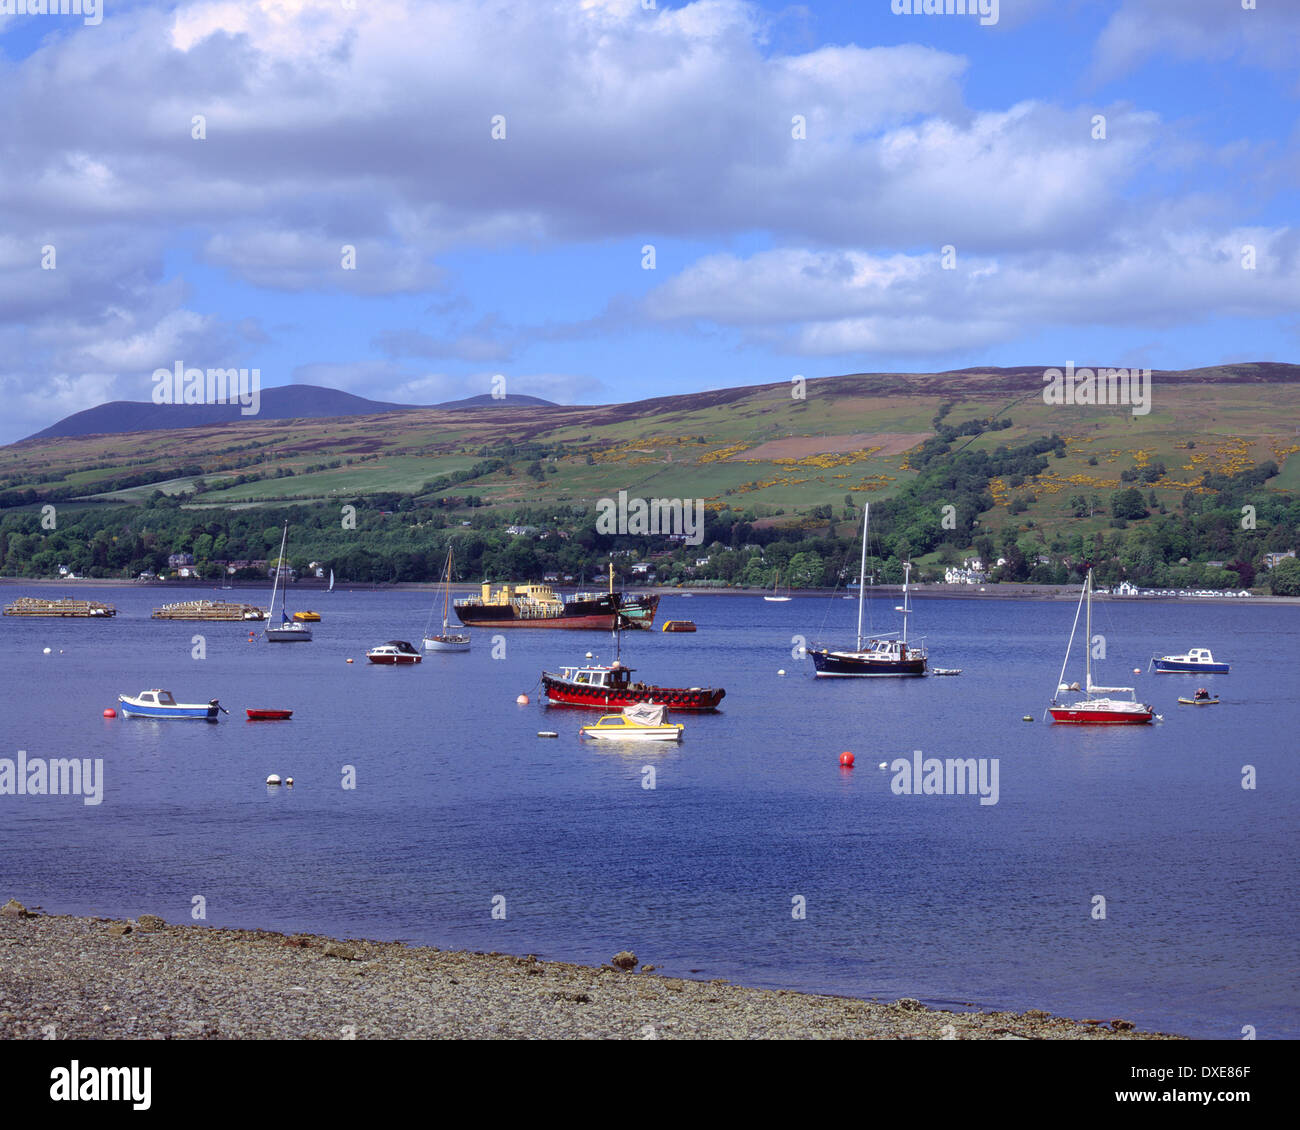 Boats on Gareloch near clynder on the rosneath peninsula, clyde. - Stock Image